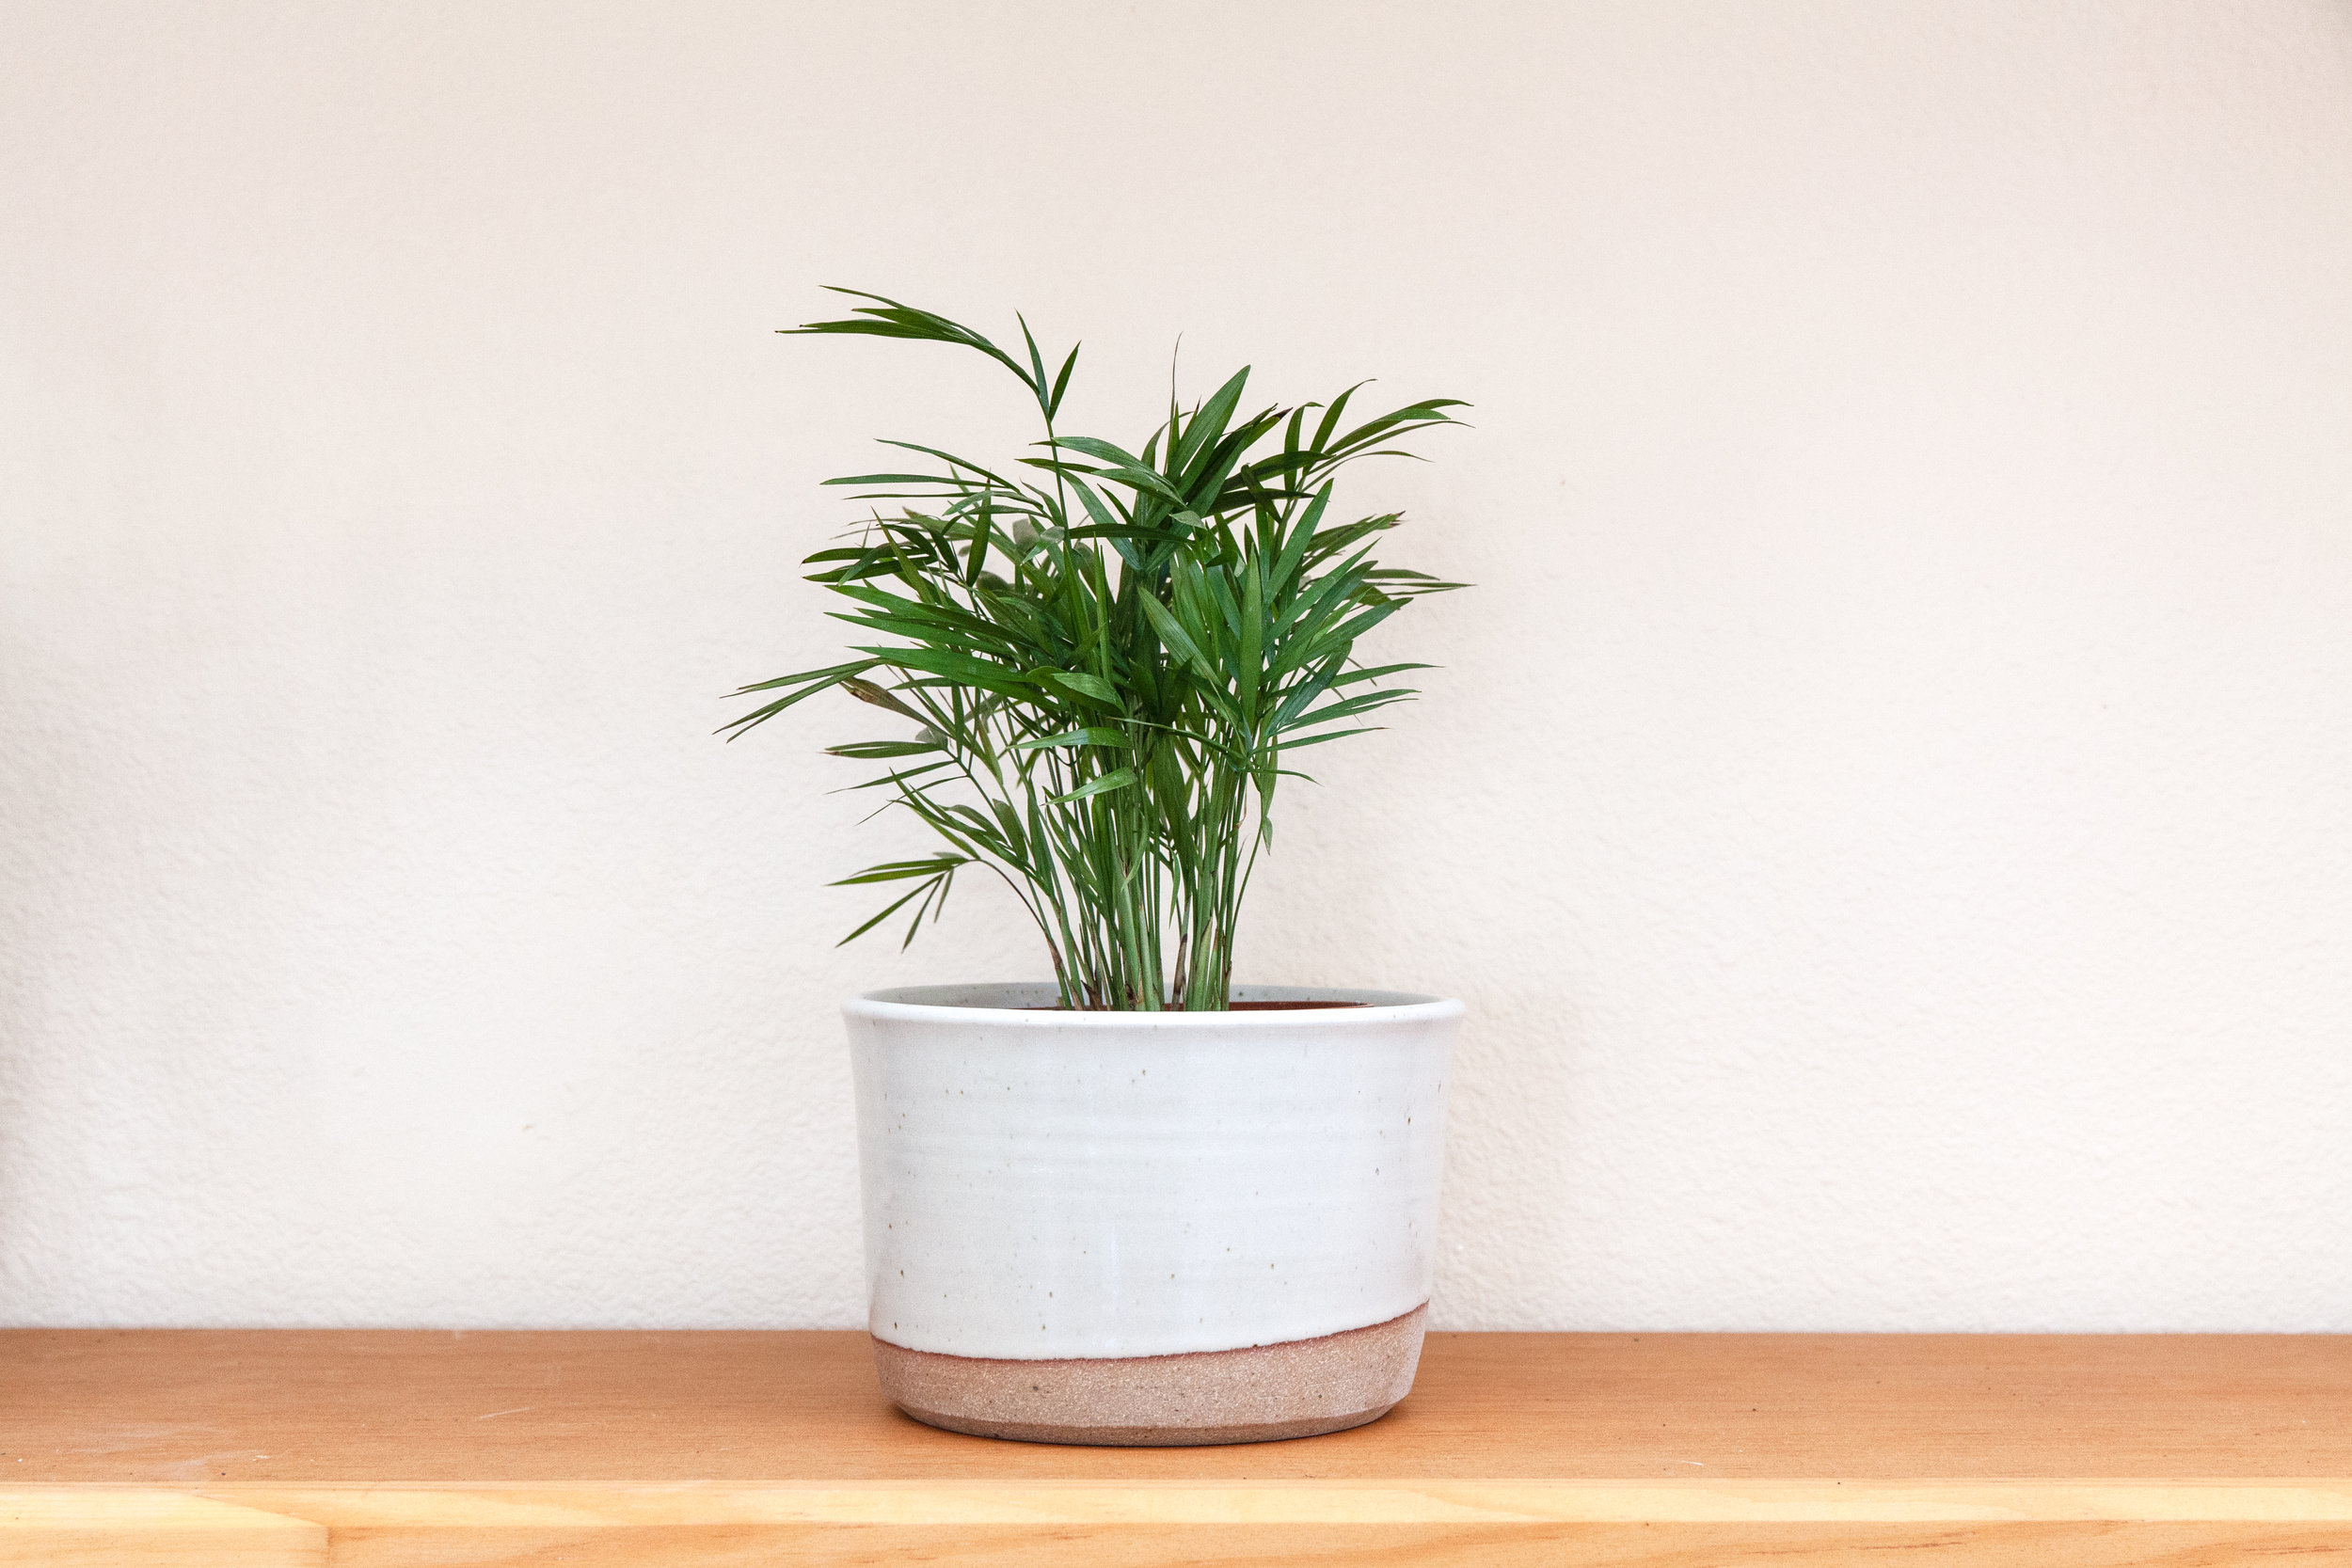 This Hanselmannn Pottery ceramic plant holder  adds an upgraded, unique touch to any living area.